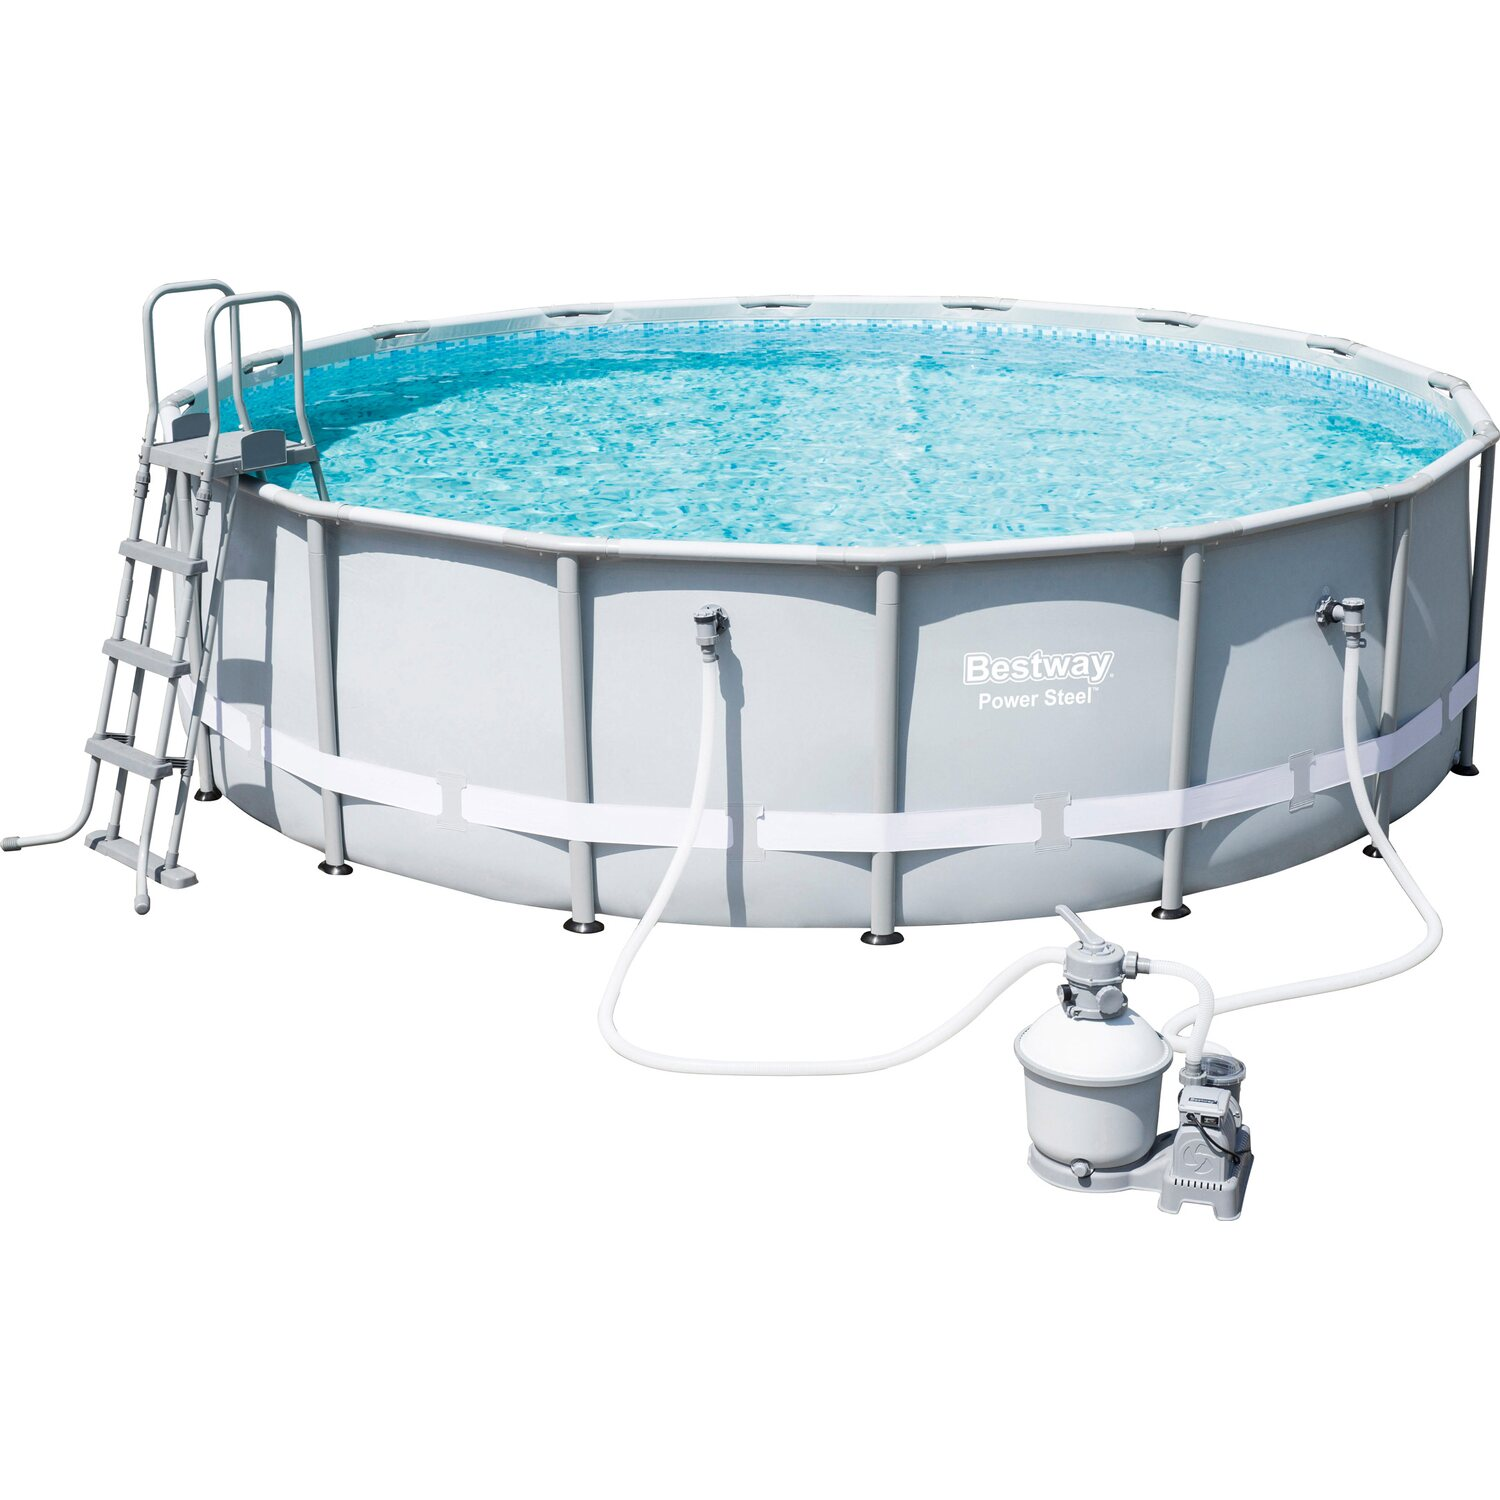 Bestway pool set power steel frame 488 cm x 122 cm kaufen for Bestway pool bei obi